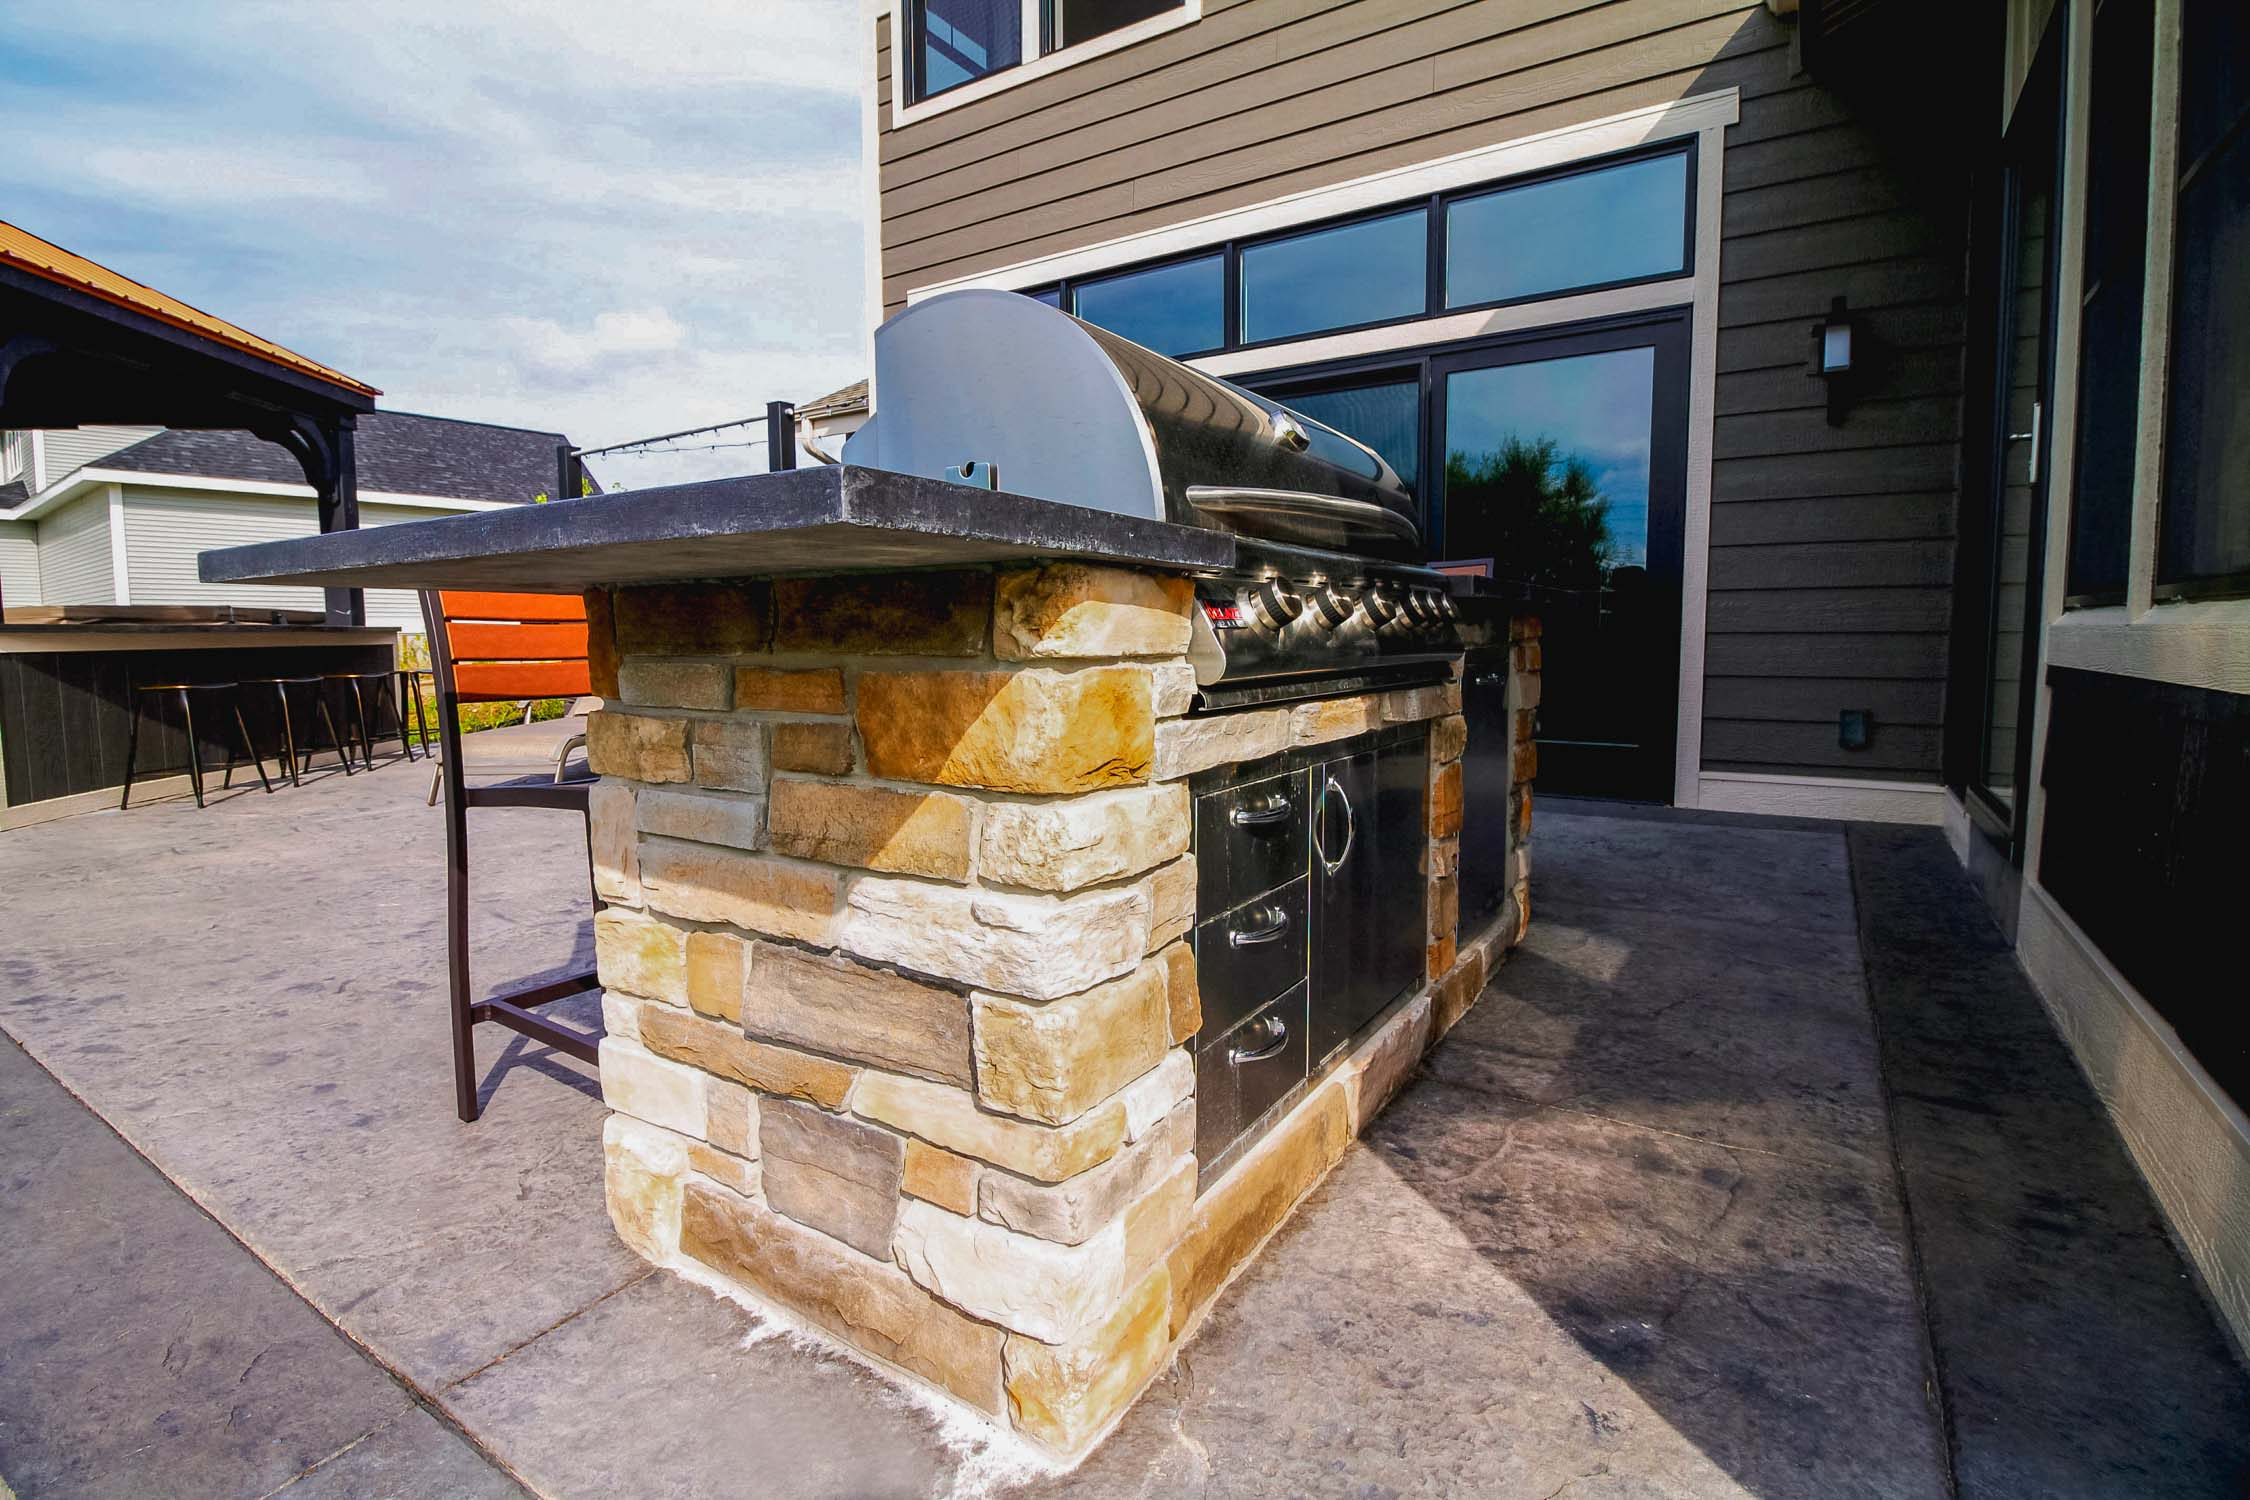 Luxury Patio with Built-In Outdoor Grill